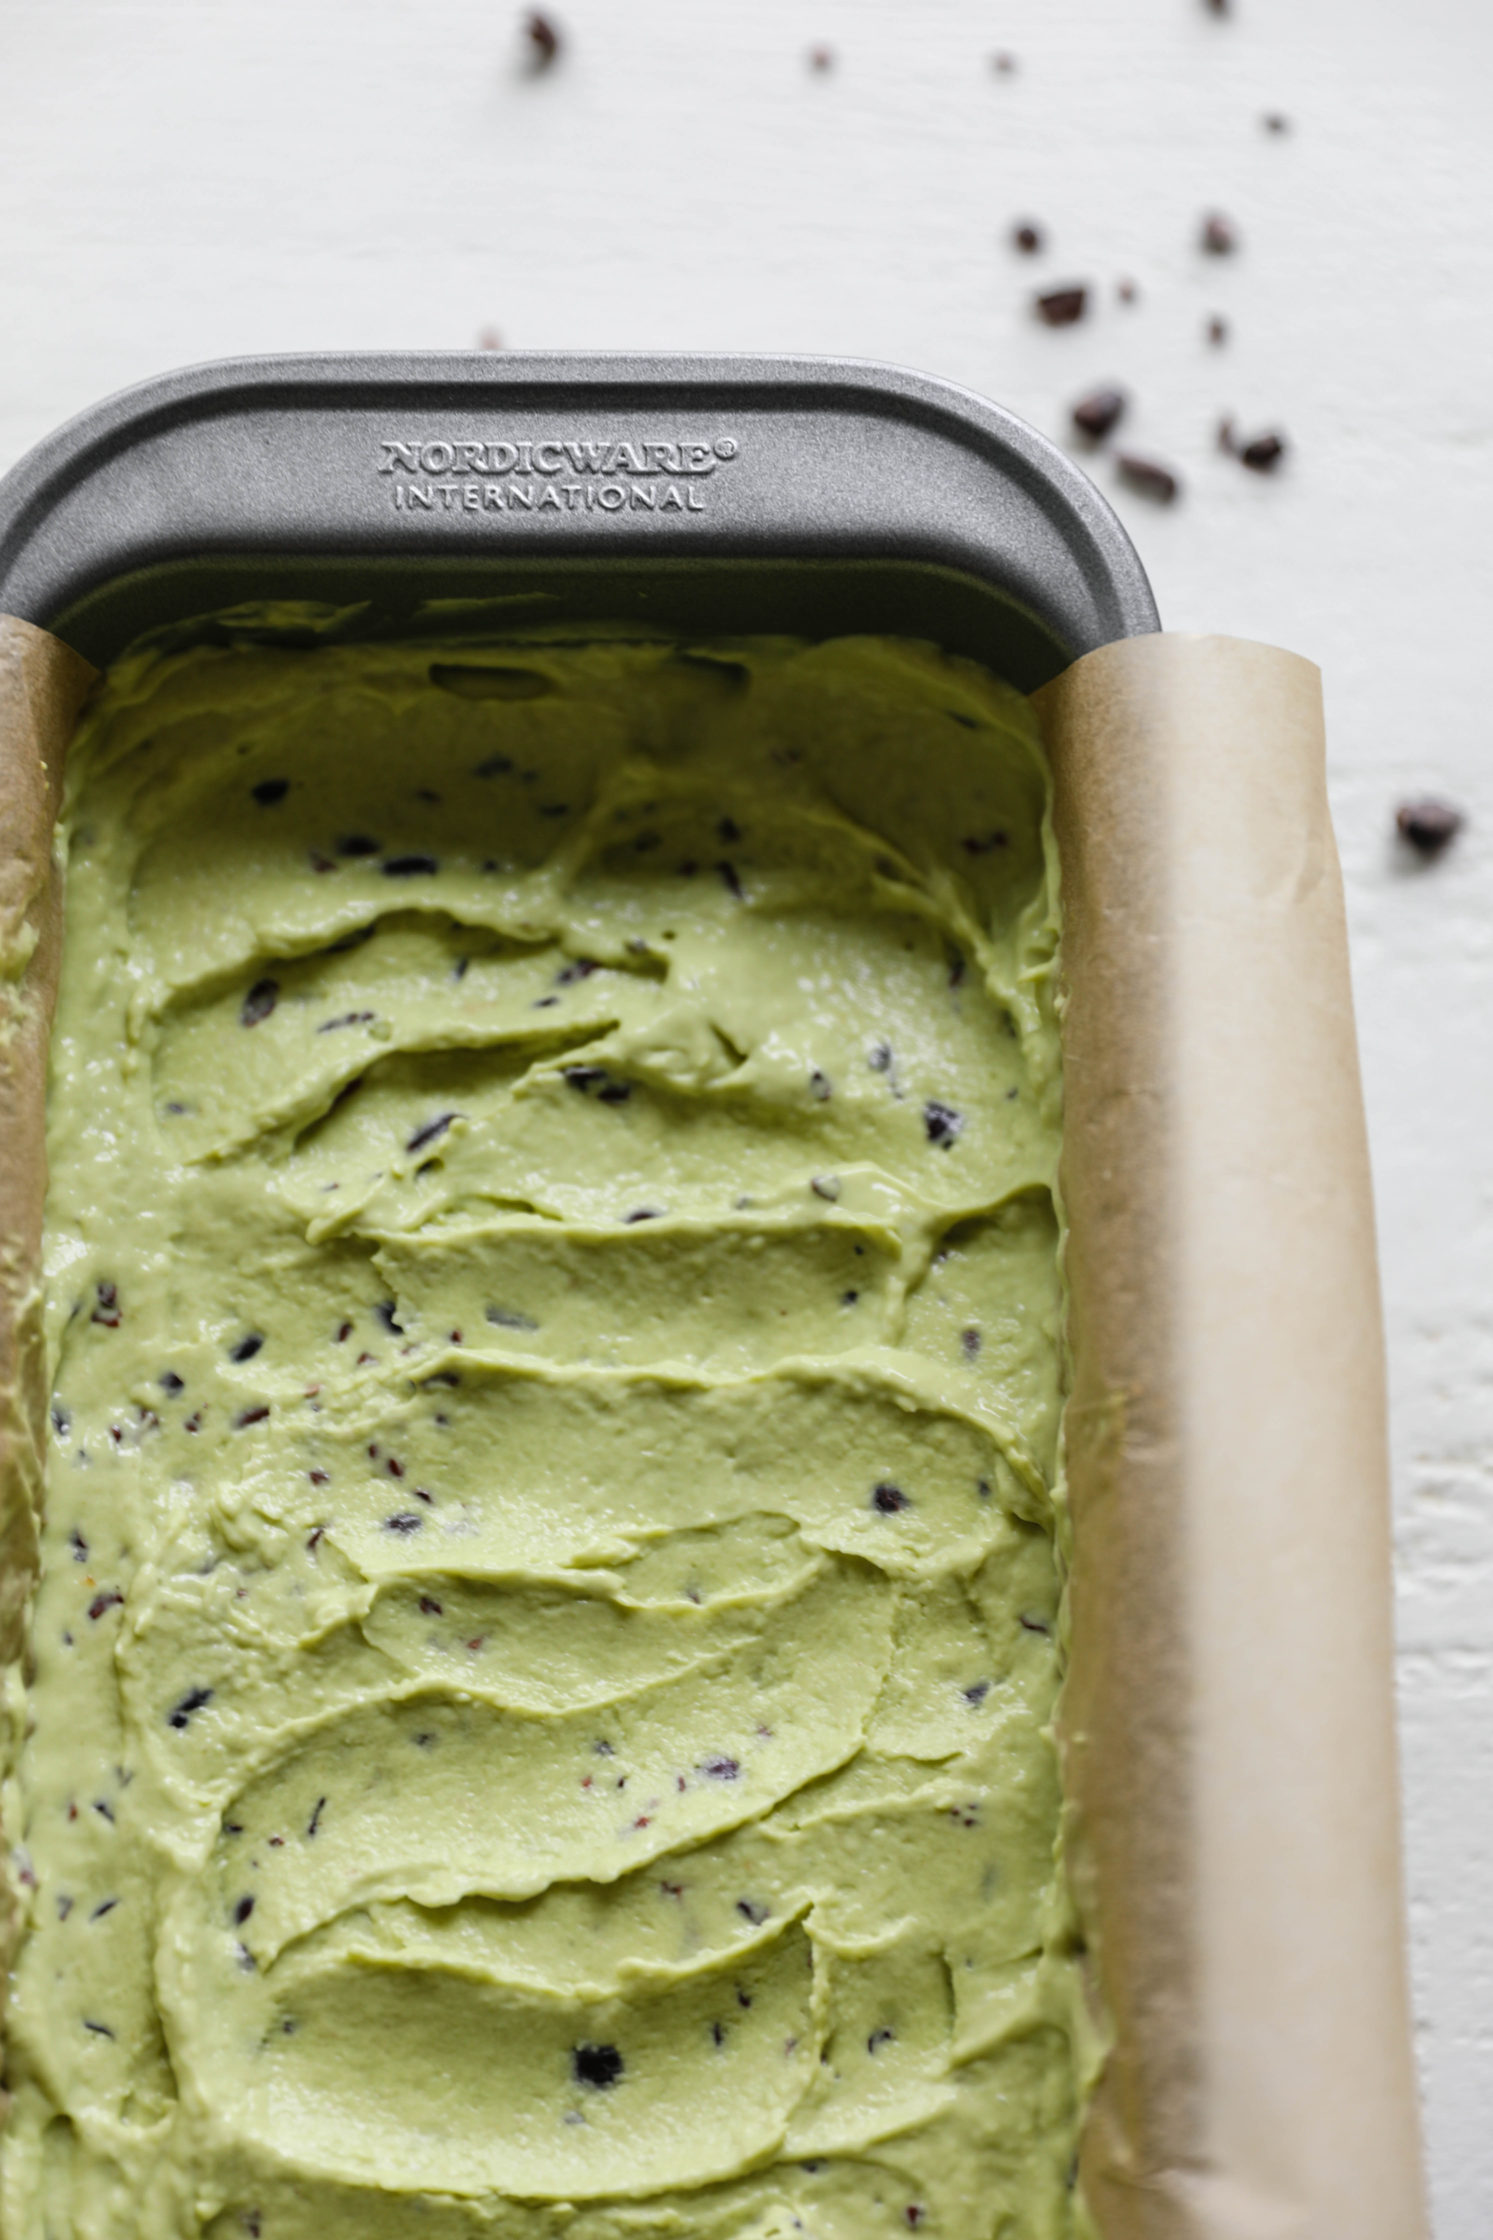 Avocado Mint Cacao Chip Ice Cream Sandwiches by Flora & Vino